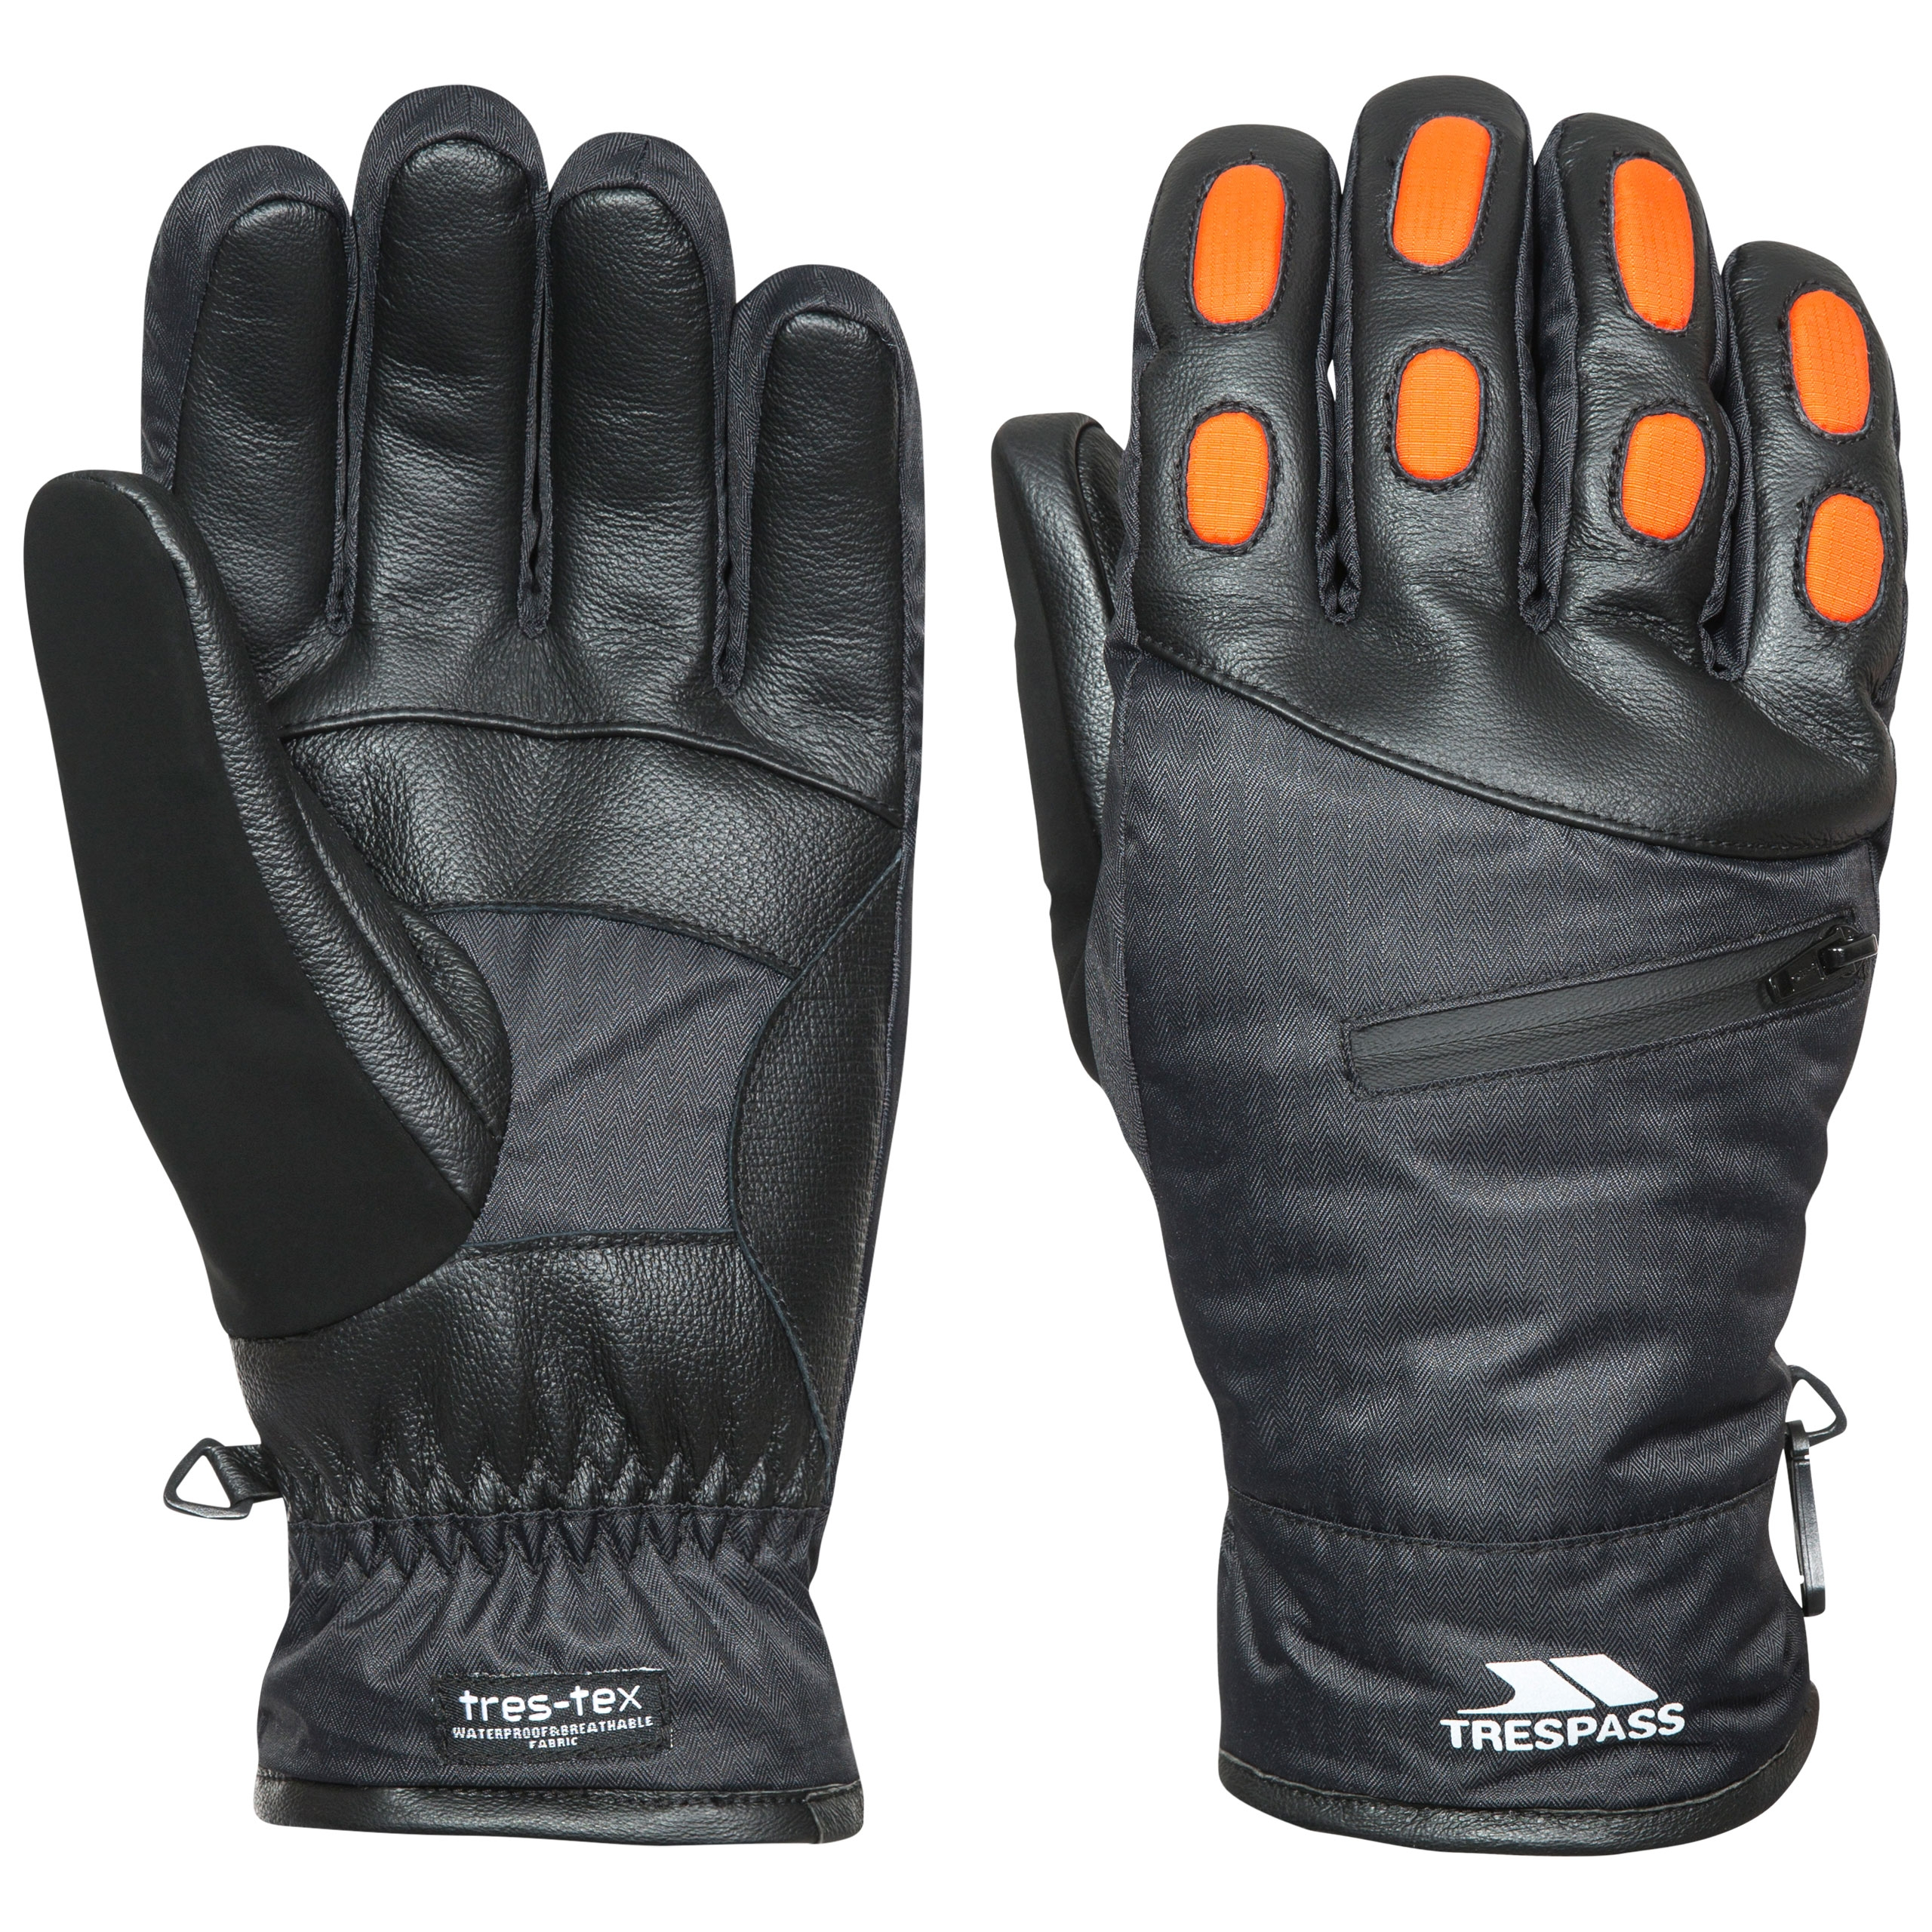 Trespass Mens Punch Waterproof Ski Gloves